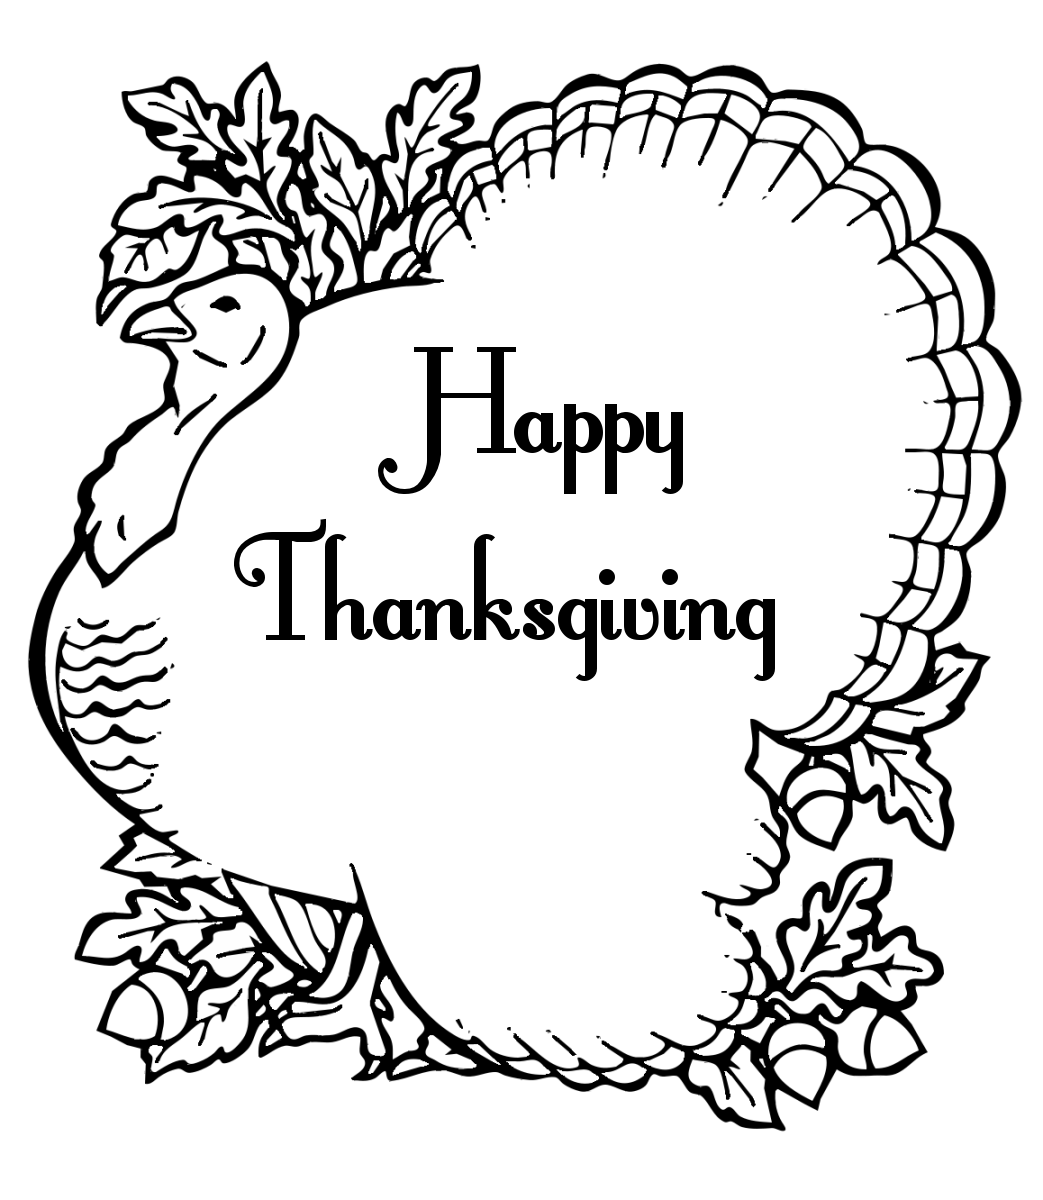 Thanksgiving Coloring Pages 2 Coloring Pages To Print Free Printable Coloring Pages Thanksgiving